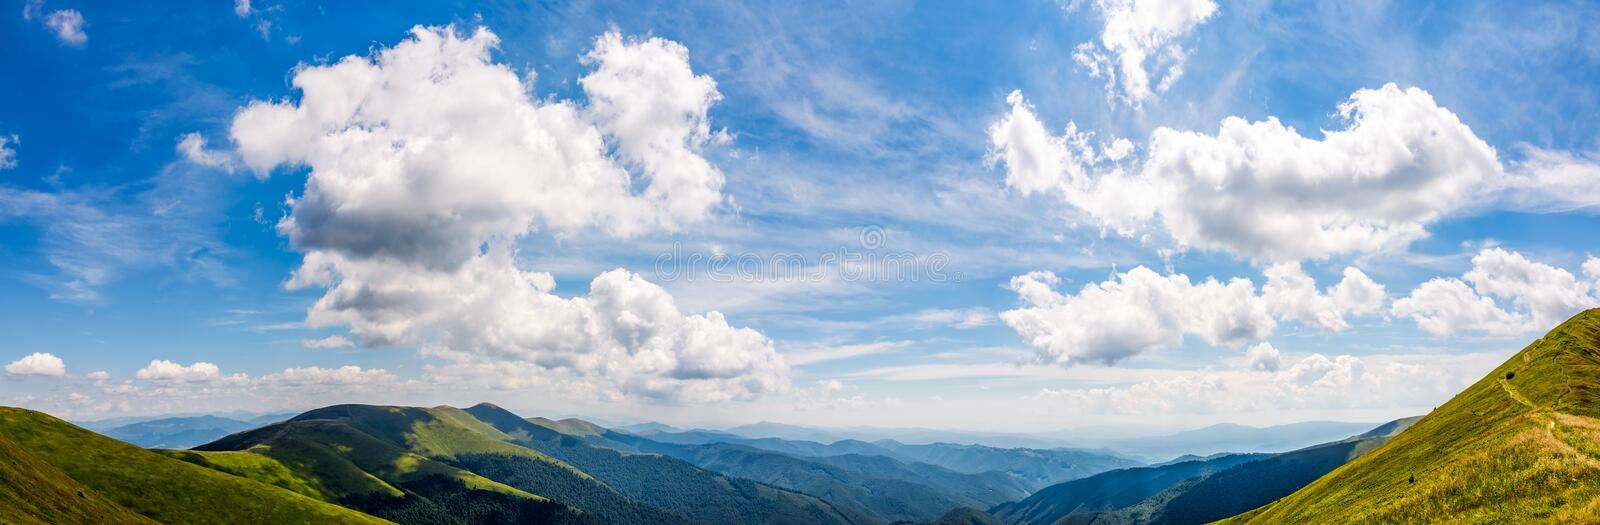 Gorgeous cloudscape over the mountain ridge tops royalty free stock image